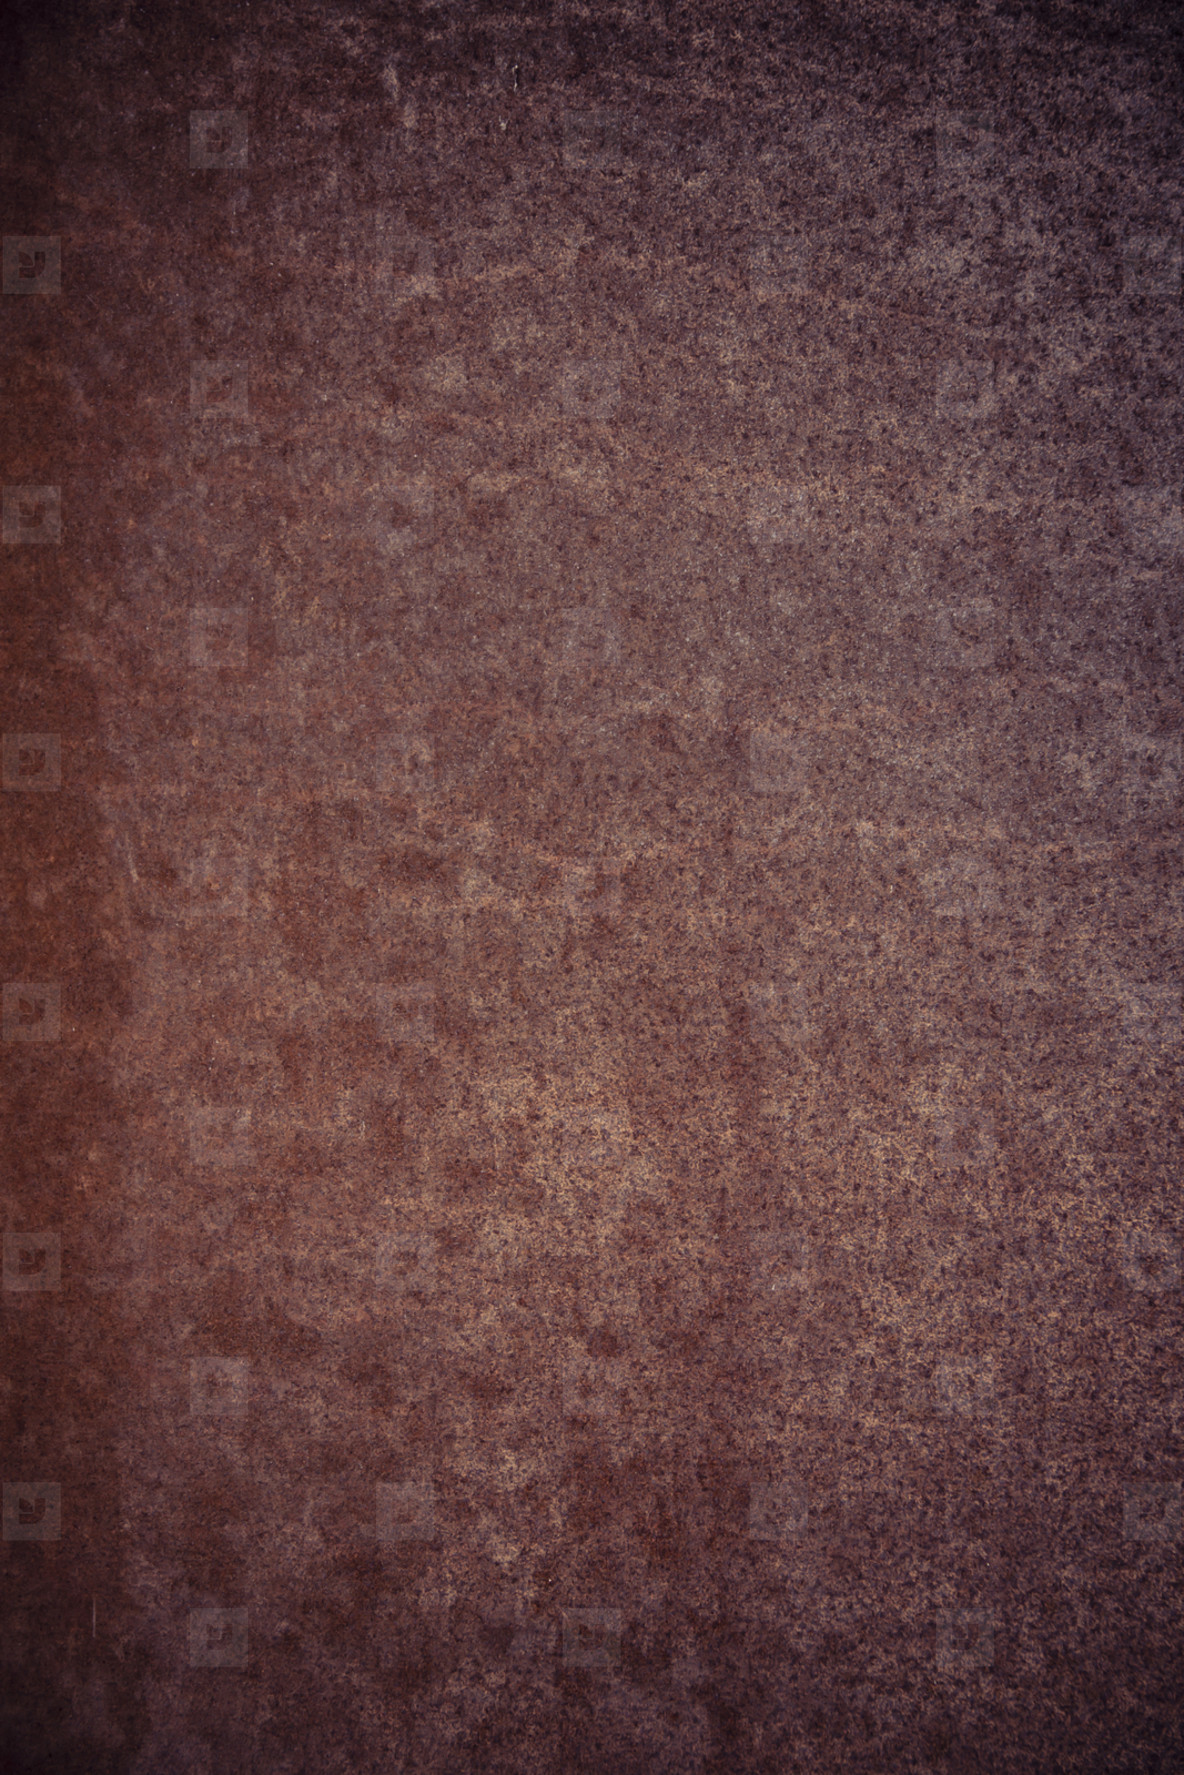 iron rusty weathered background